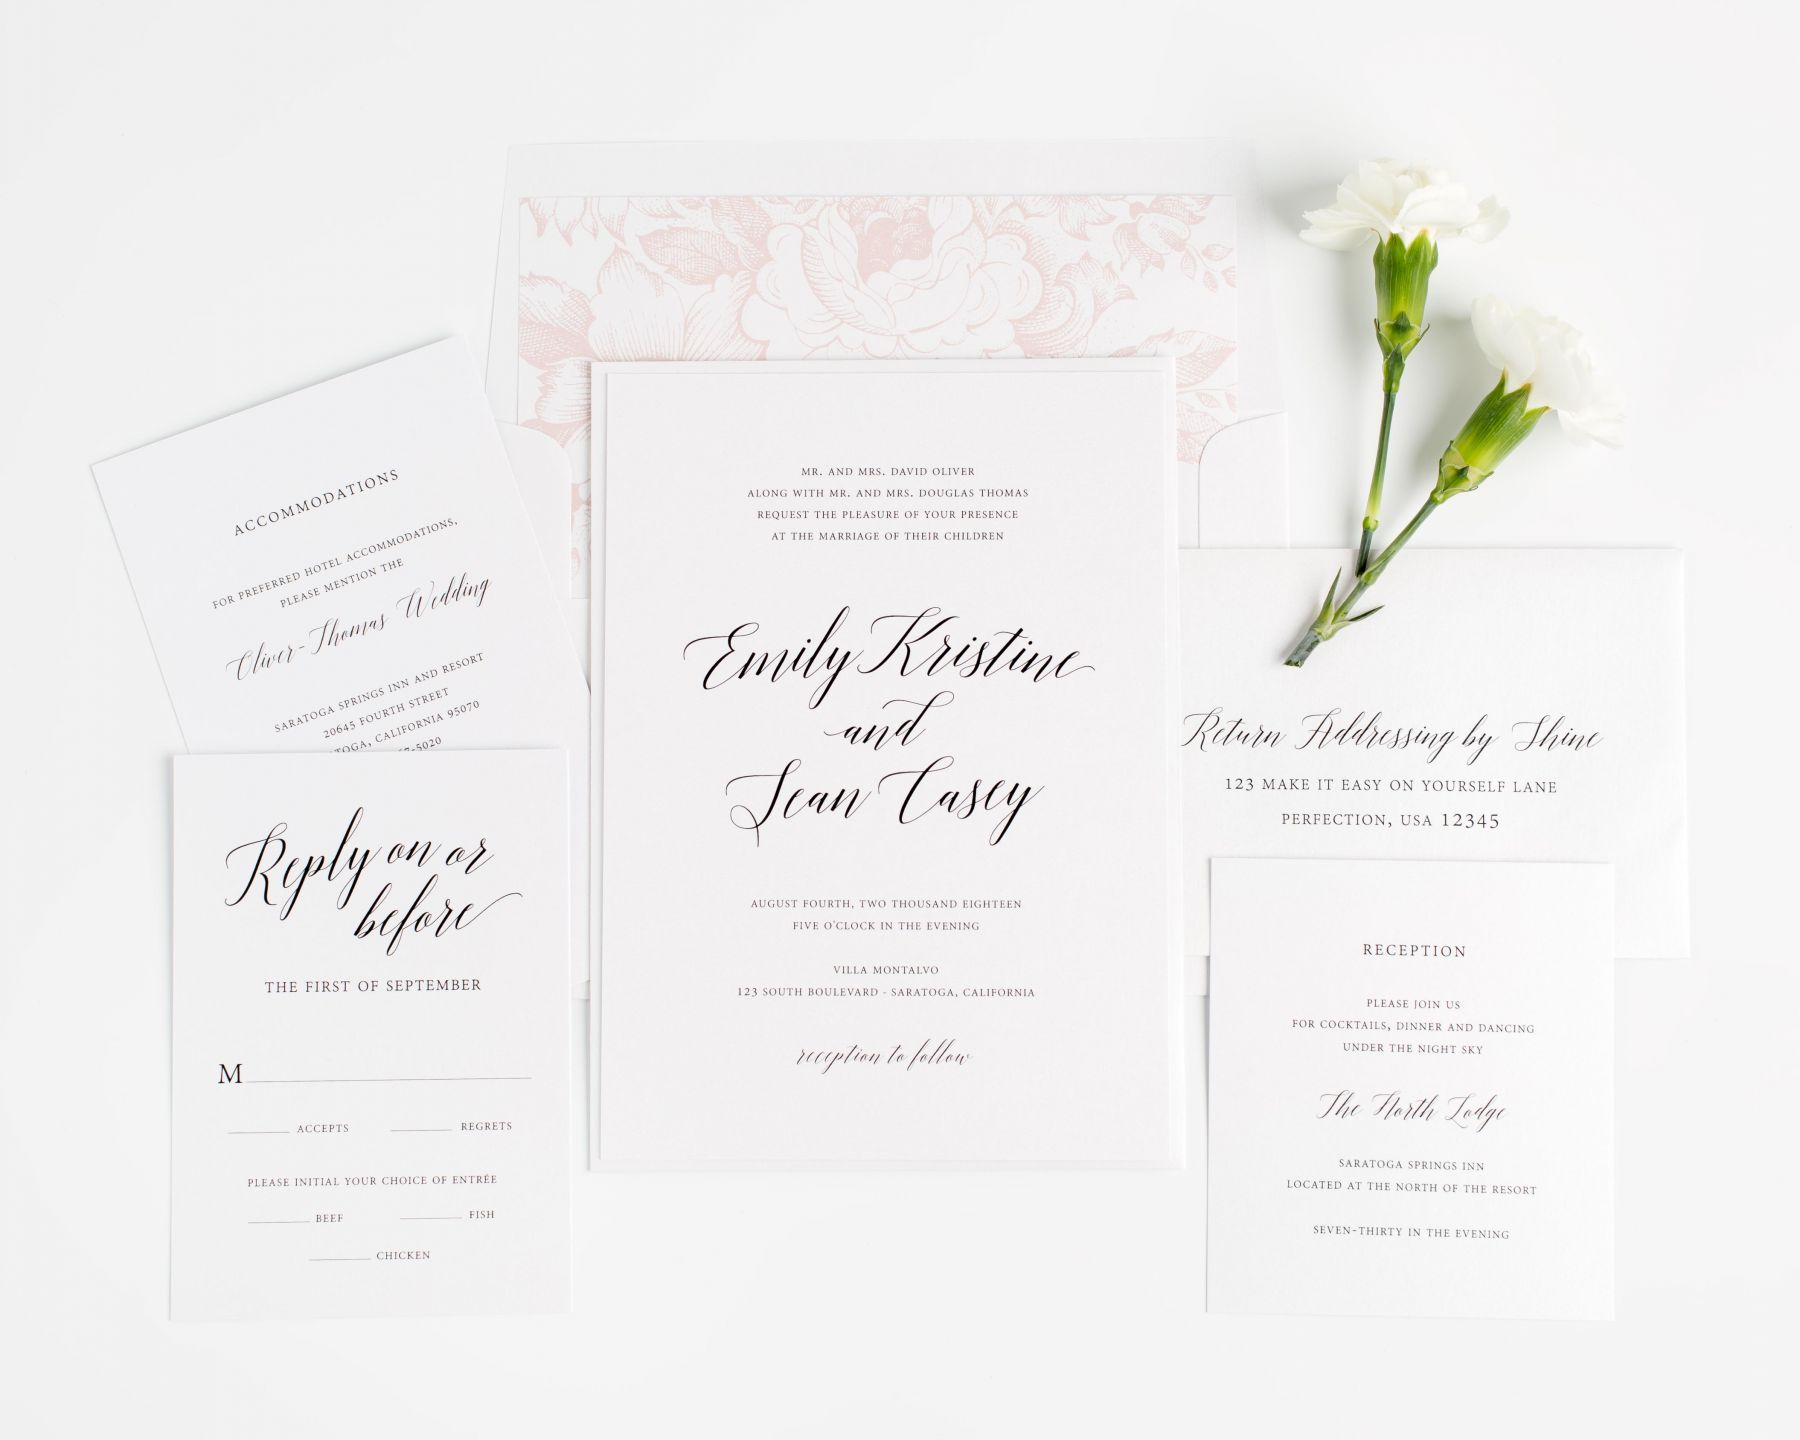 Calligraphy Wedding Invitations with a Floral Envelope Liner